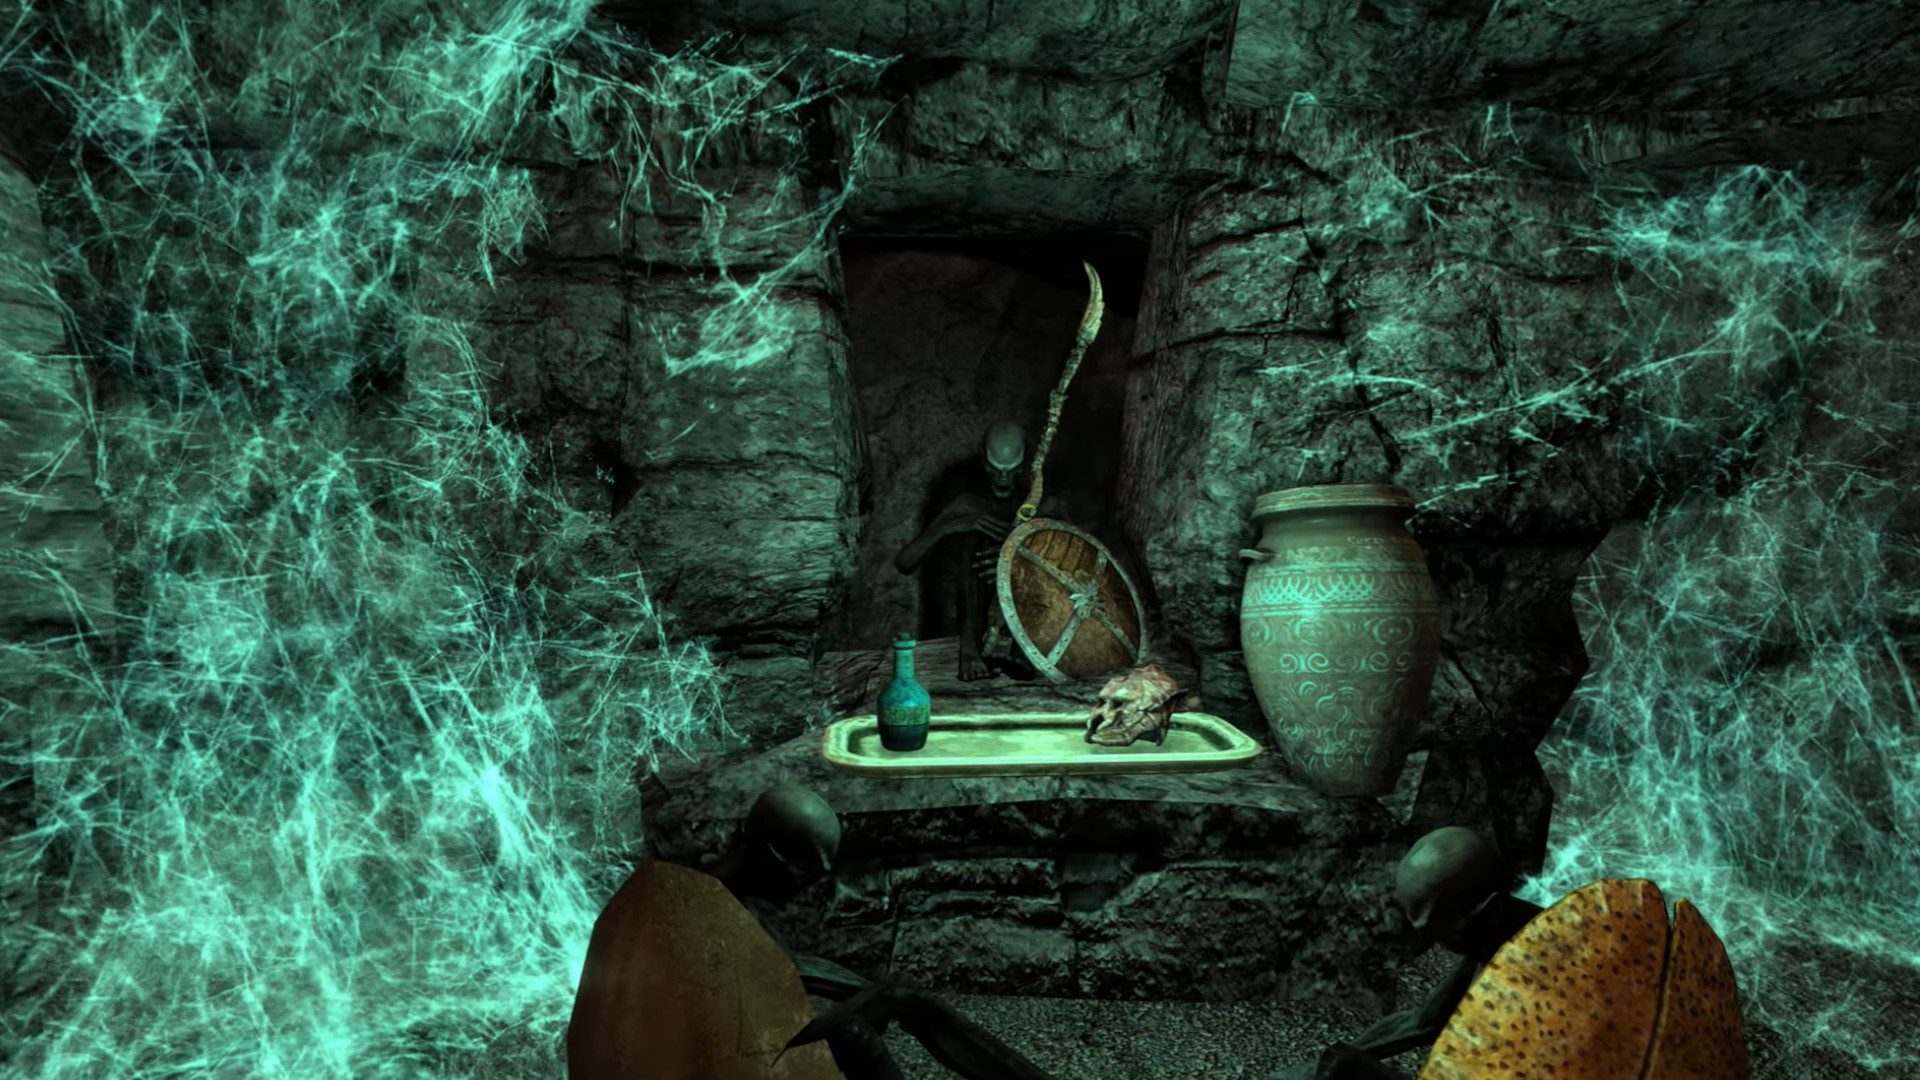 Skyrim-with-Morrowind mod Skywind still looks incredible, and still sounds a long way off